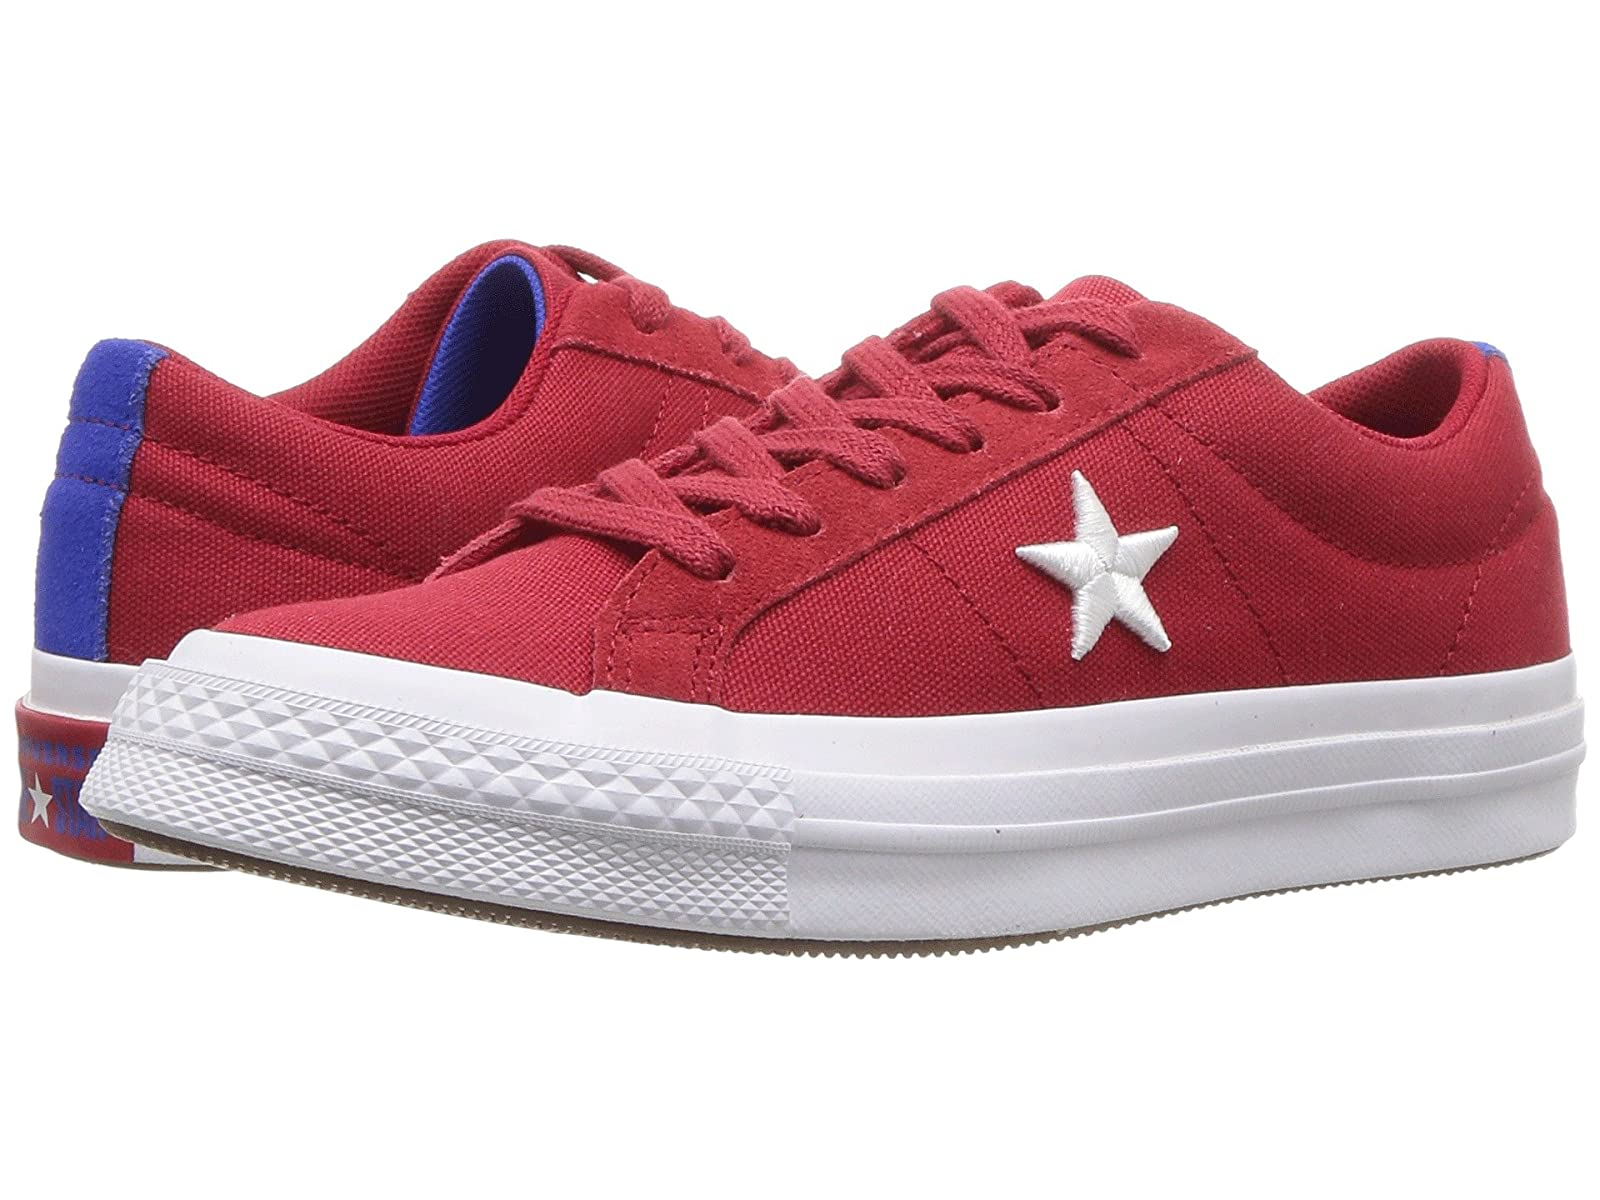 Converse Kids One Star - Ox (Big Kid)Atmospheric grades have affordable shoes